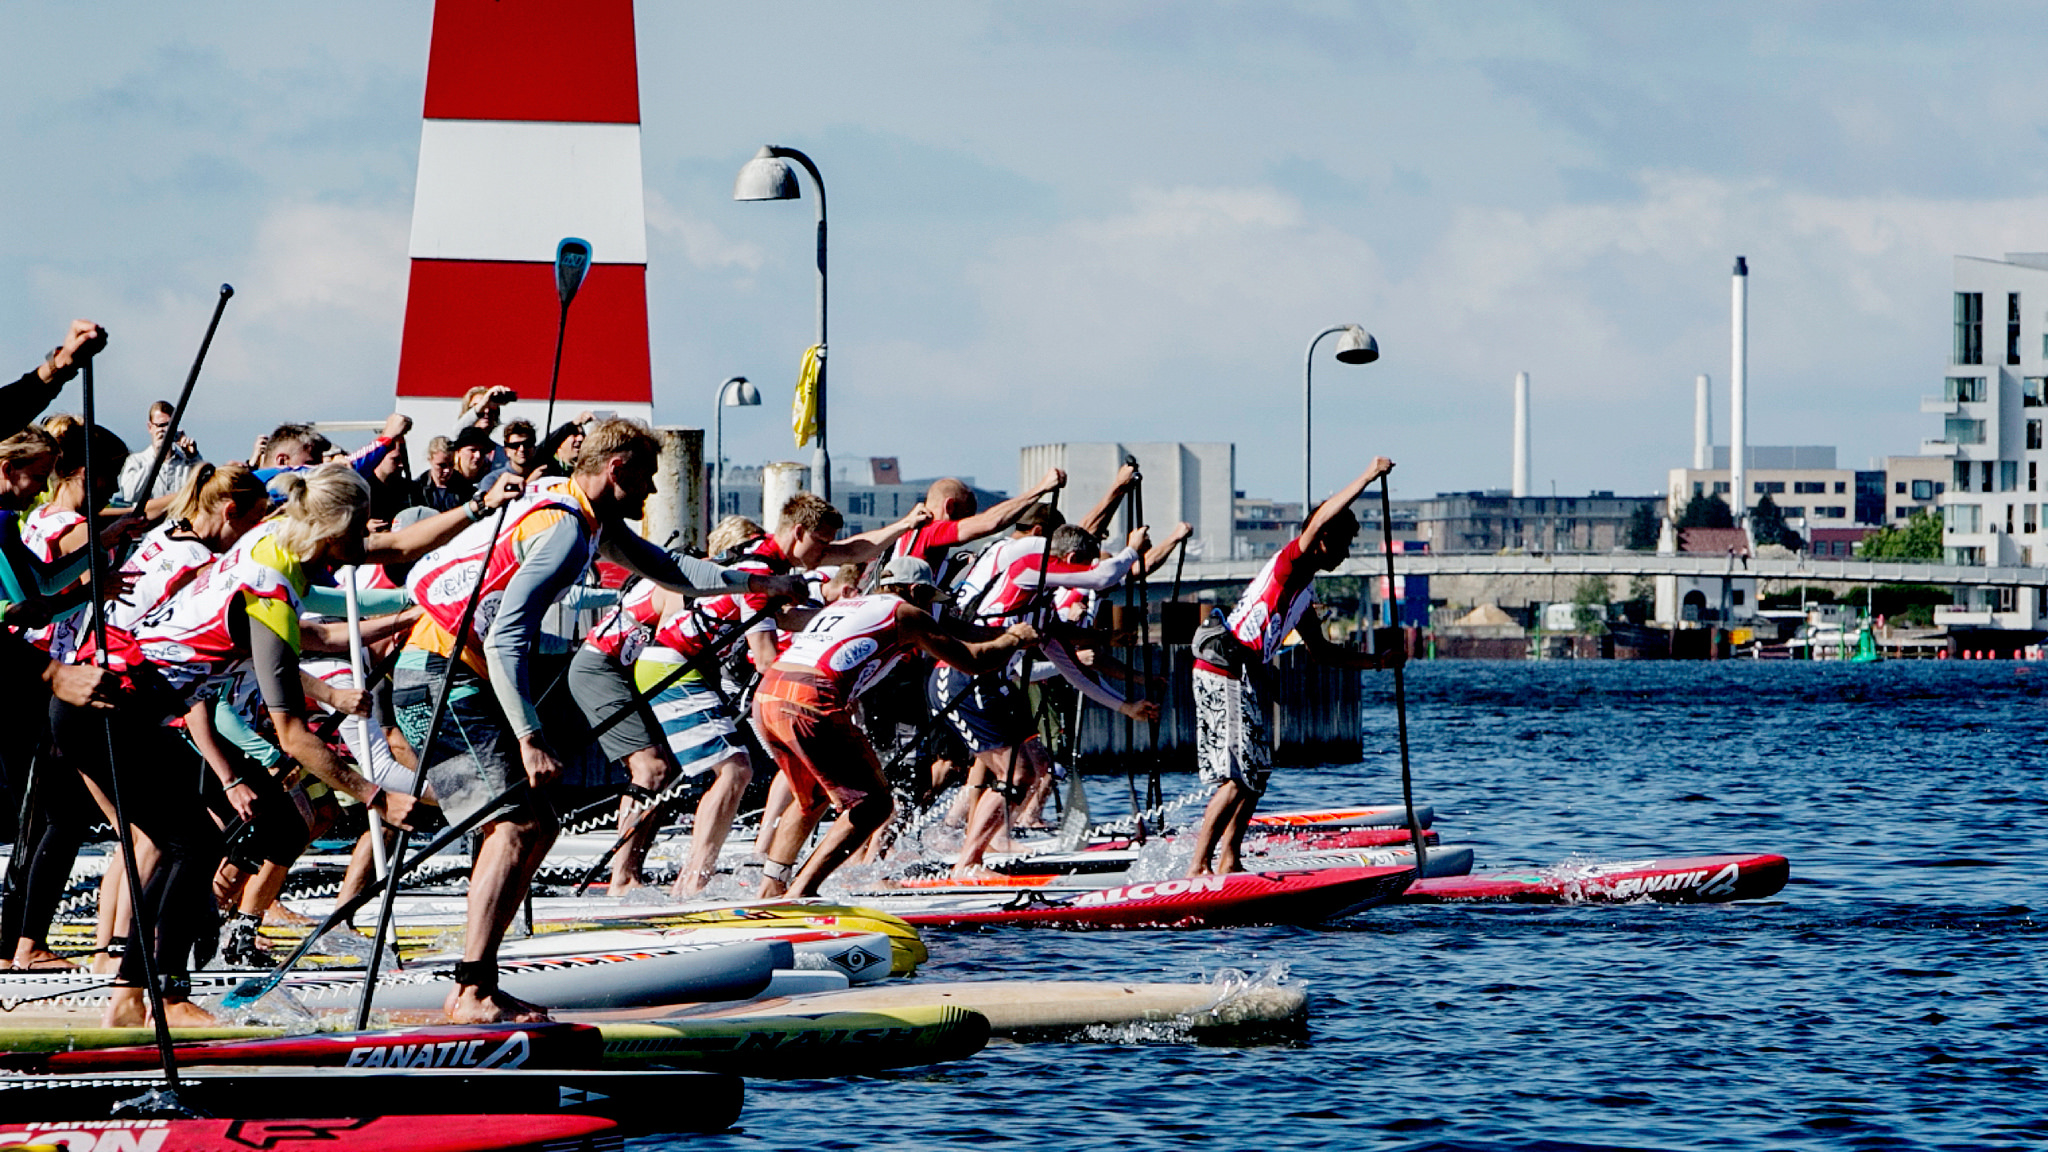 Copenhagen Harbour, during the Danish Standup Paddle Championship 2014. Credit: Jill Christina Hansen